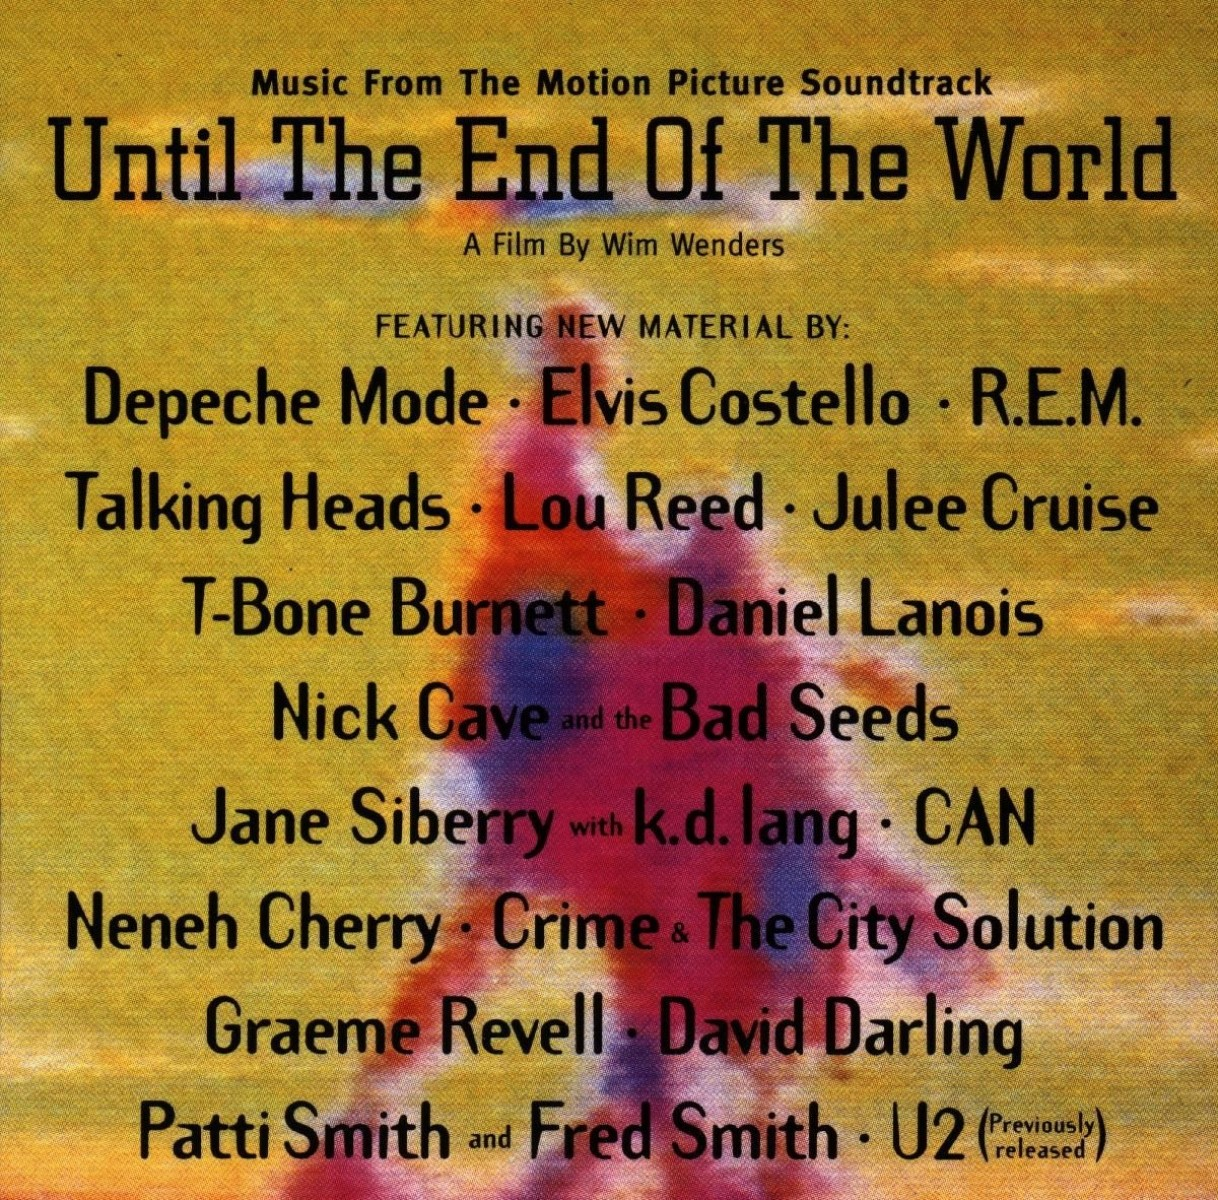 Until the End of the World (Music from the Motion Picture Soundtrack) VINYL - 9362490386